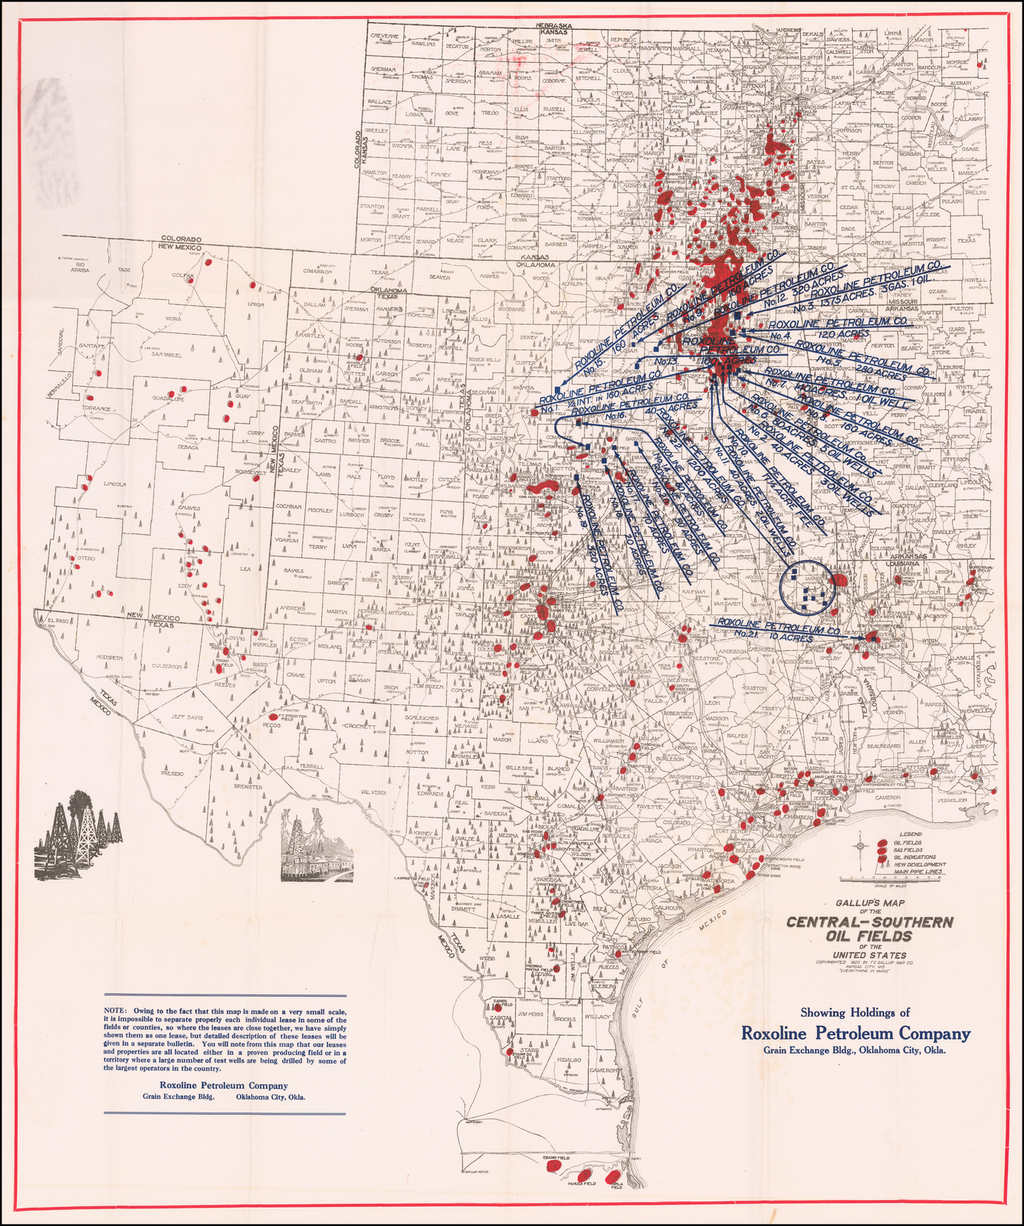 Gallup's Map of the Central-Southern Oil Fields of the United States | Showing Holdings of Roxoline Petroleum Company, Grain Exchange Bldg., Oklahoma City, Okla. By F.E. Gallup